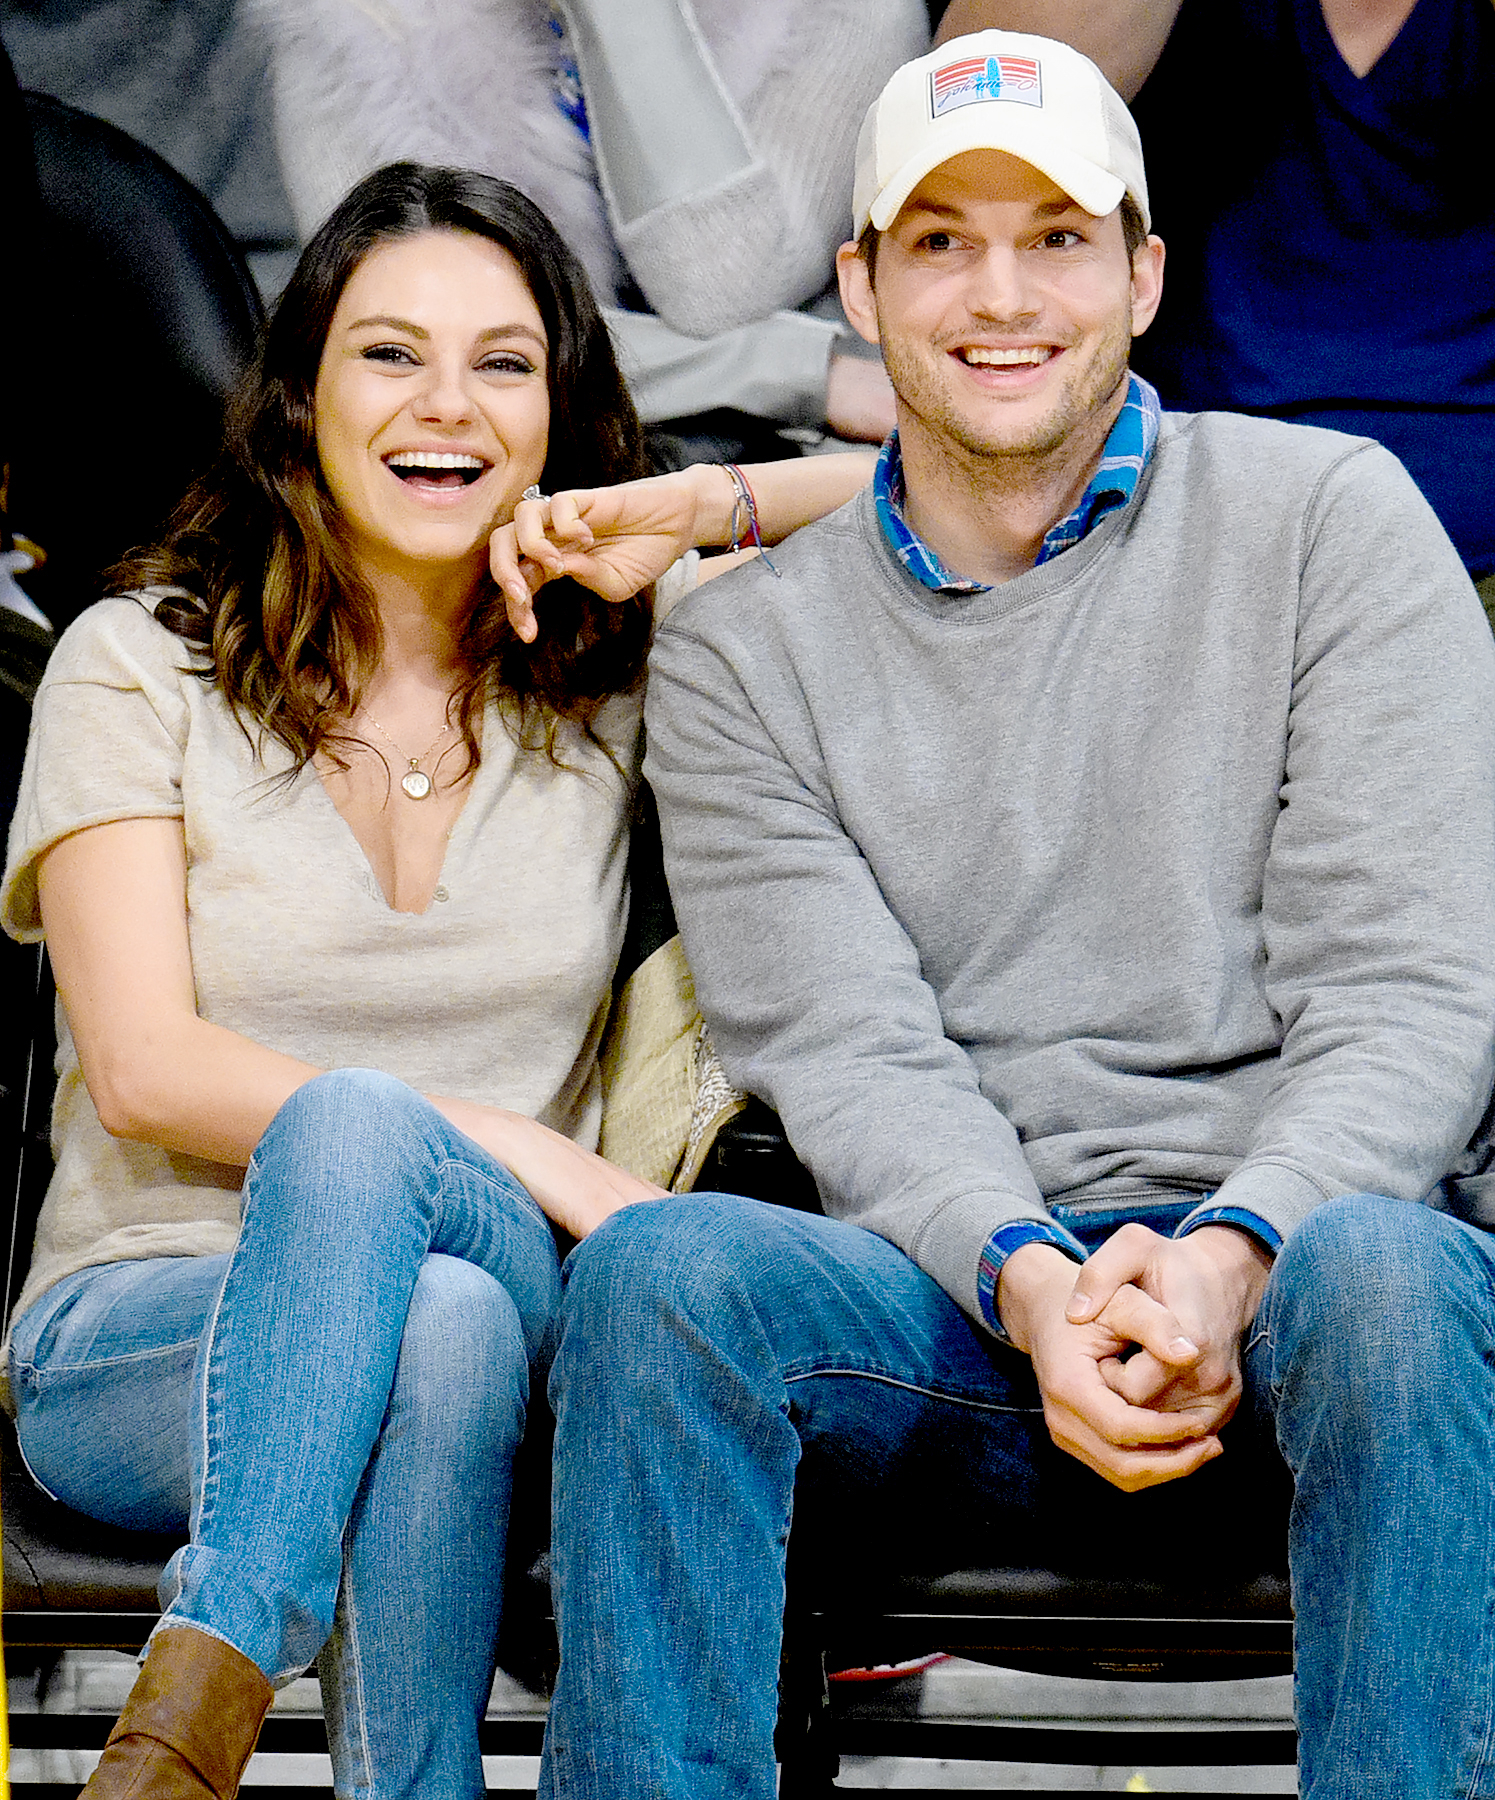 Mila Kunis and Ashton Kutcher attend a basketball game between the Oklahoma City Thunder and the Los Angeles Lakers at Staples Center on December 19, 2014 in Los Angeles, California.